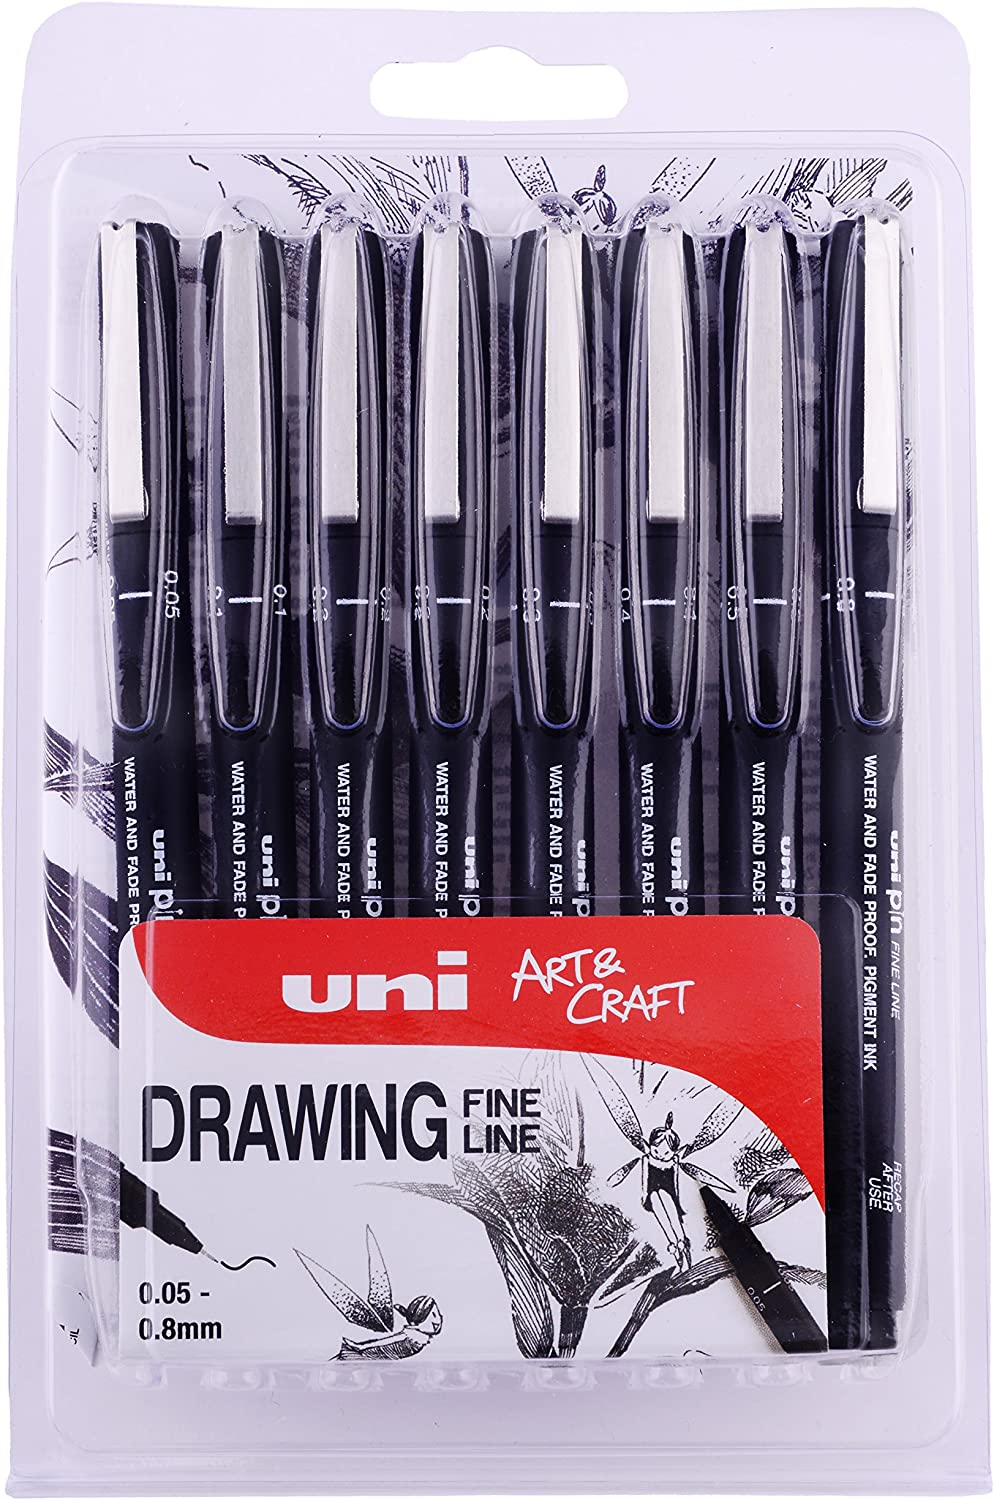 (8 markers, Black) - PIN 8pc Drawing Pen, Black Ink, 8 Pack Assorted Nib Sizes